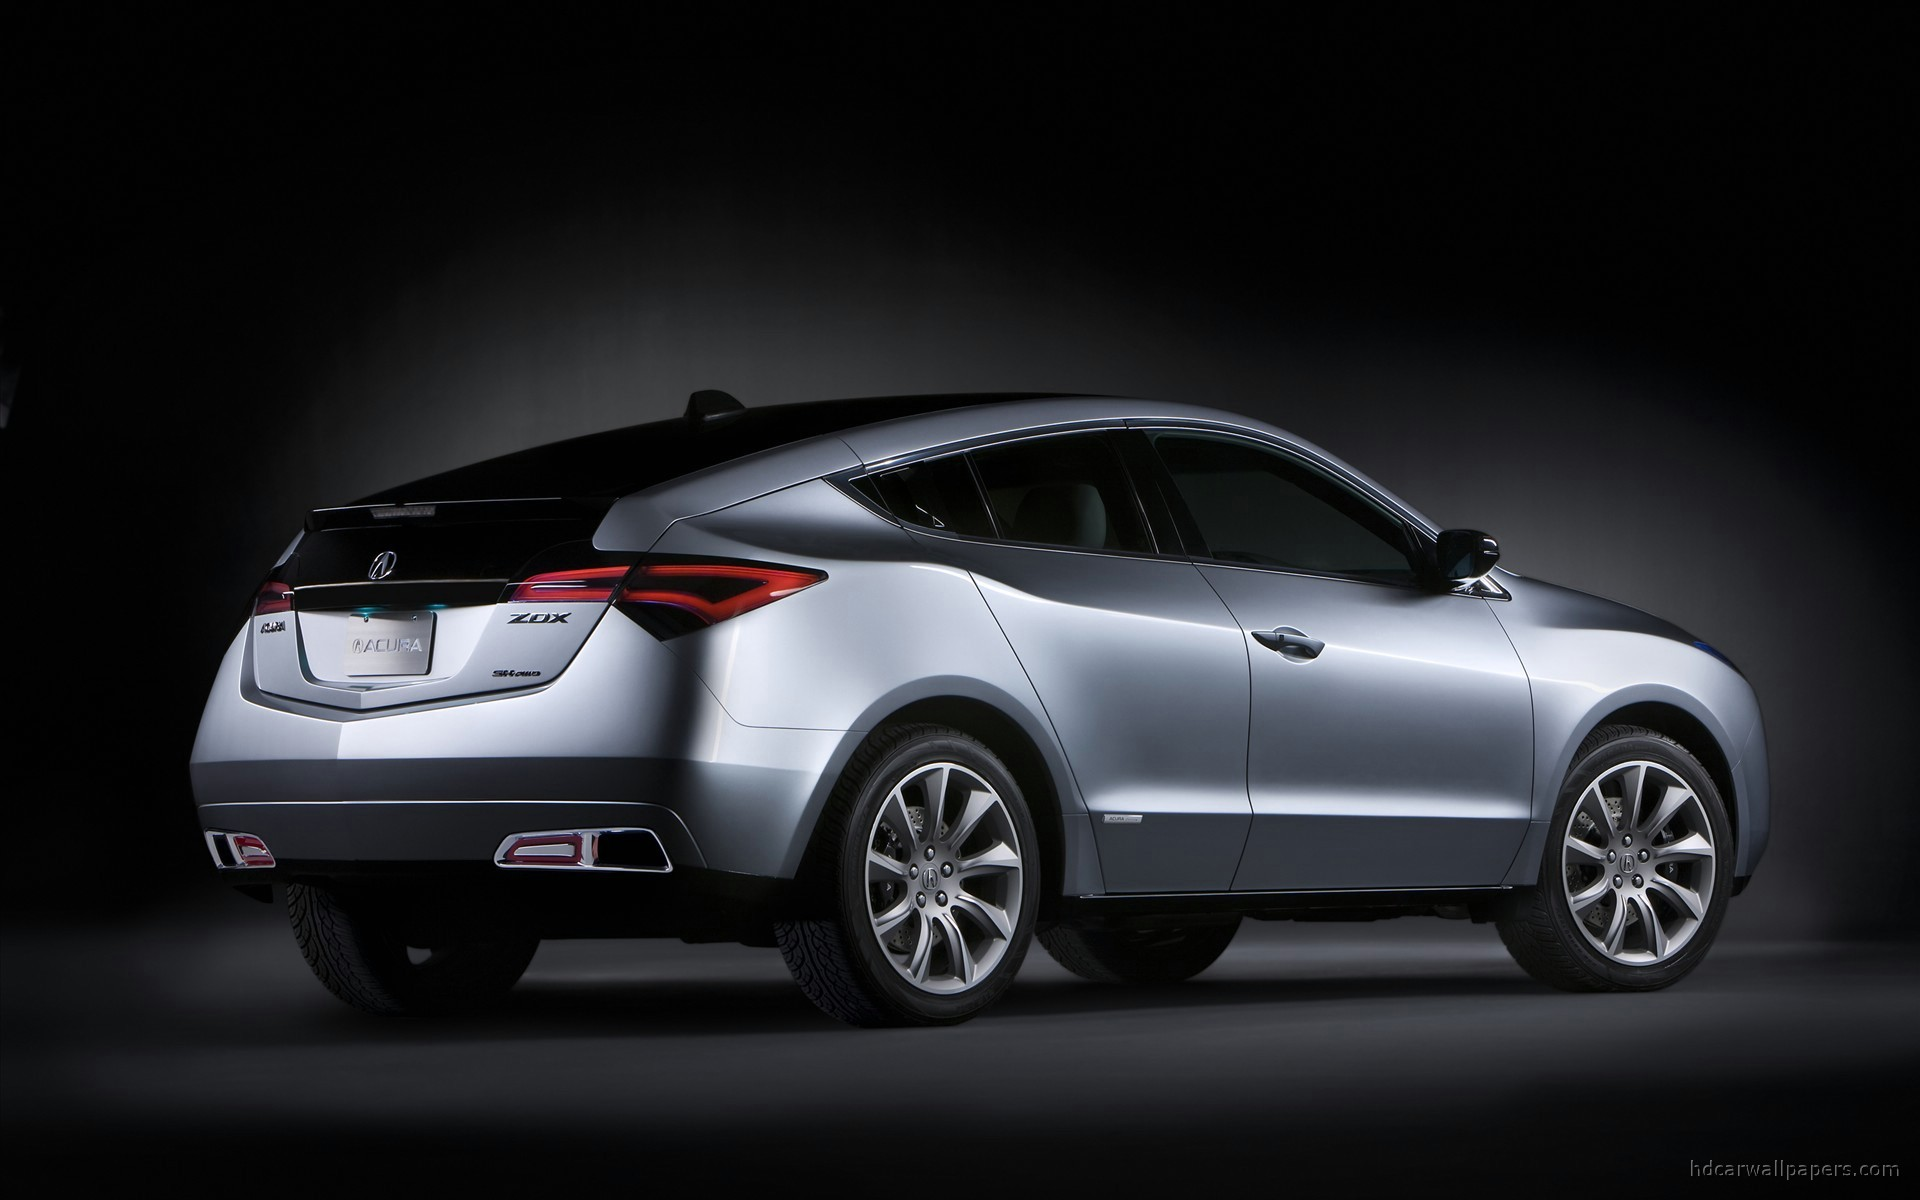 Bmw X6 Wallpaper Iphone Acura Zdx Prototype 2 Wallpaper Hd Car Wallpapers Id 66